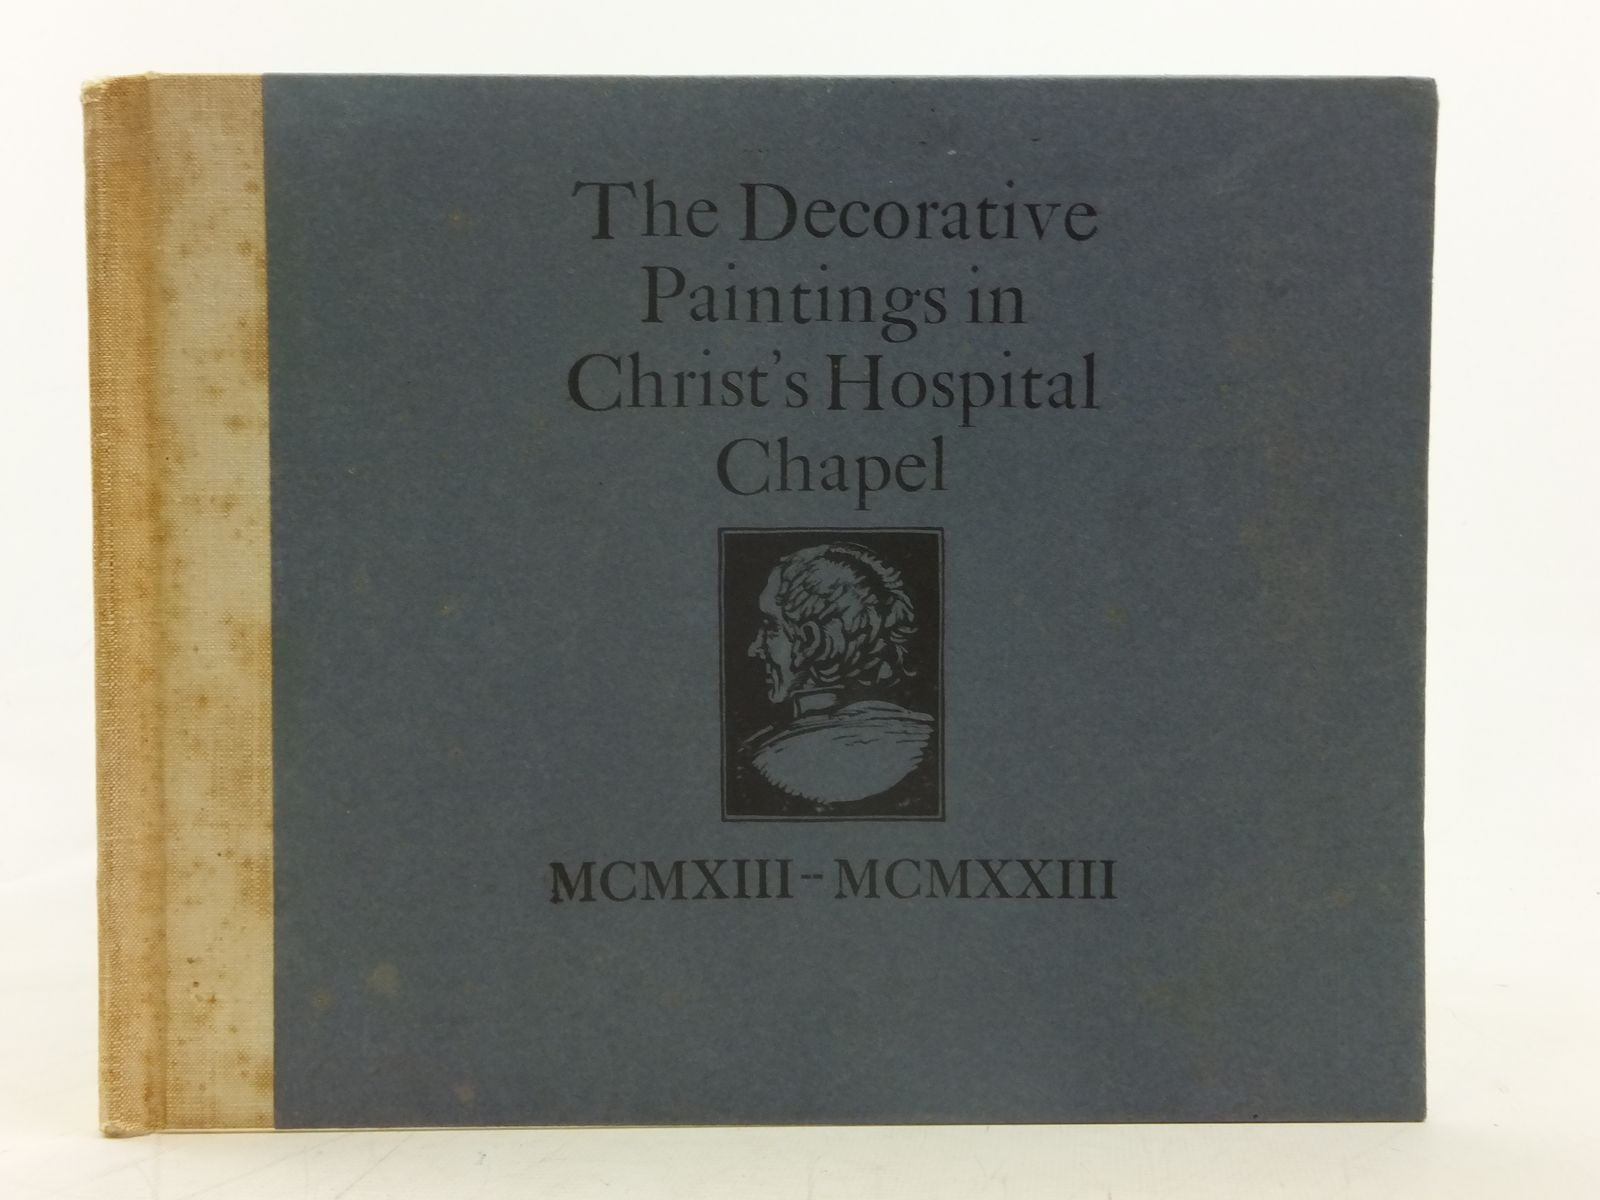 Photo of THE DECORATIVE PAINTINGS IN CHRIST'S HOSPITAL CHAPEL MCMXIII - MCMXXIII written by Macklin, W.R.<br />Rigby, H.A. illustrated by Macklin, W.R.<br />Rigby, H.A. published by St. Dominic's Press (STOCK CODE: 2116553)  for sale by Stella & Rose's Books